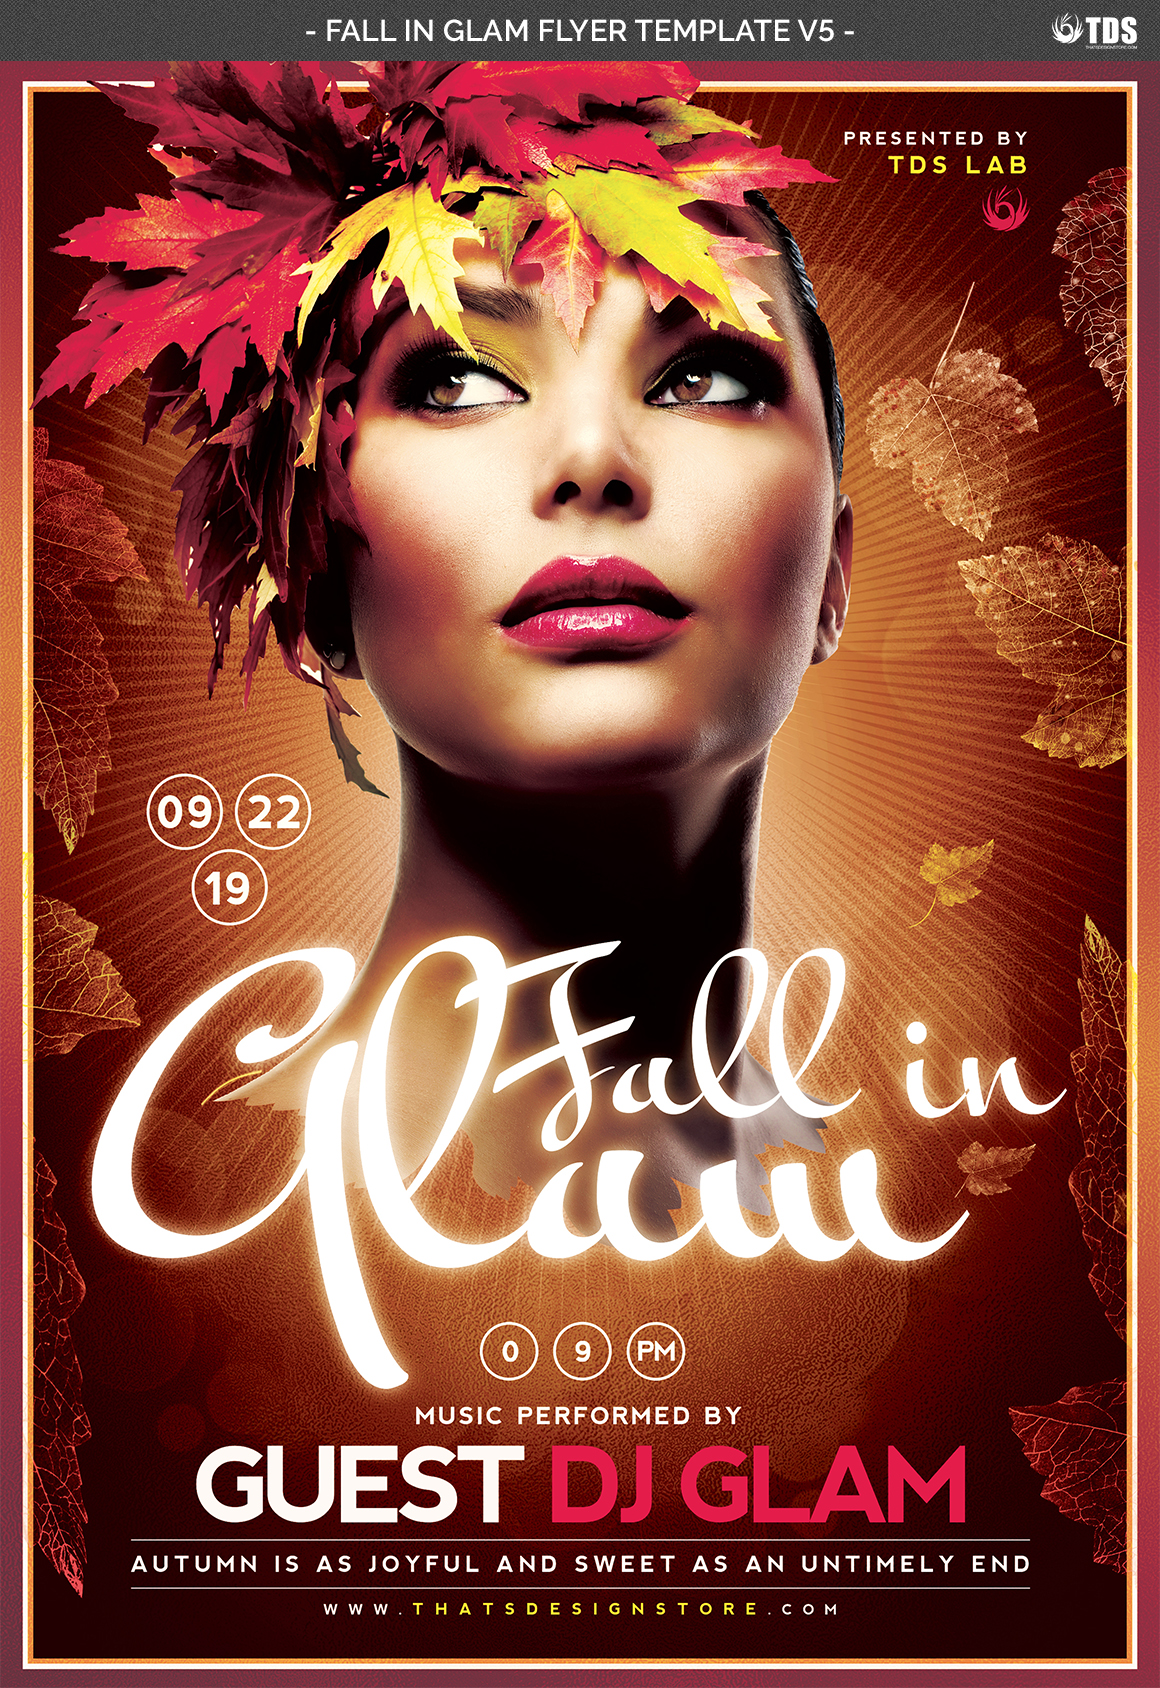 Fall in Glam Flyer Template V5 example image 7